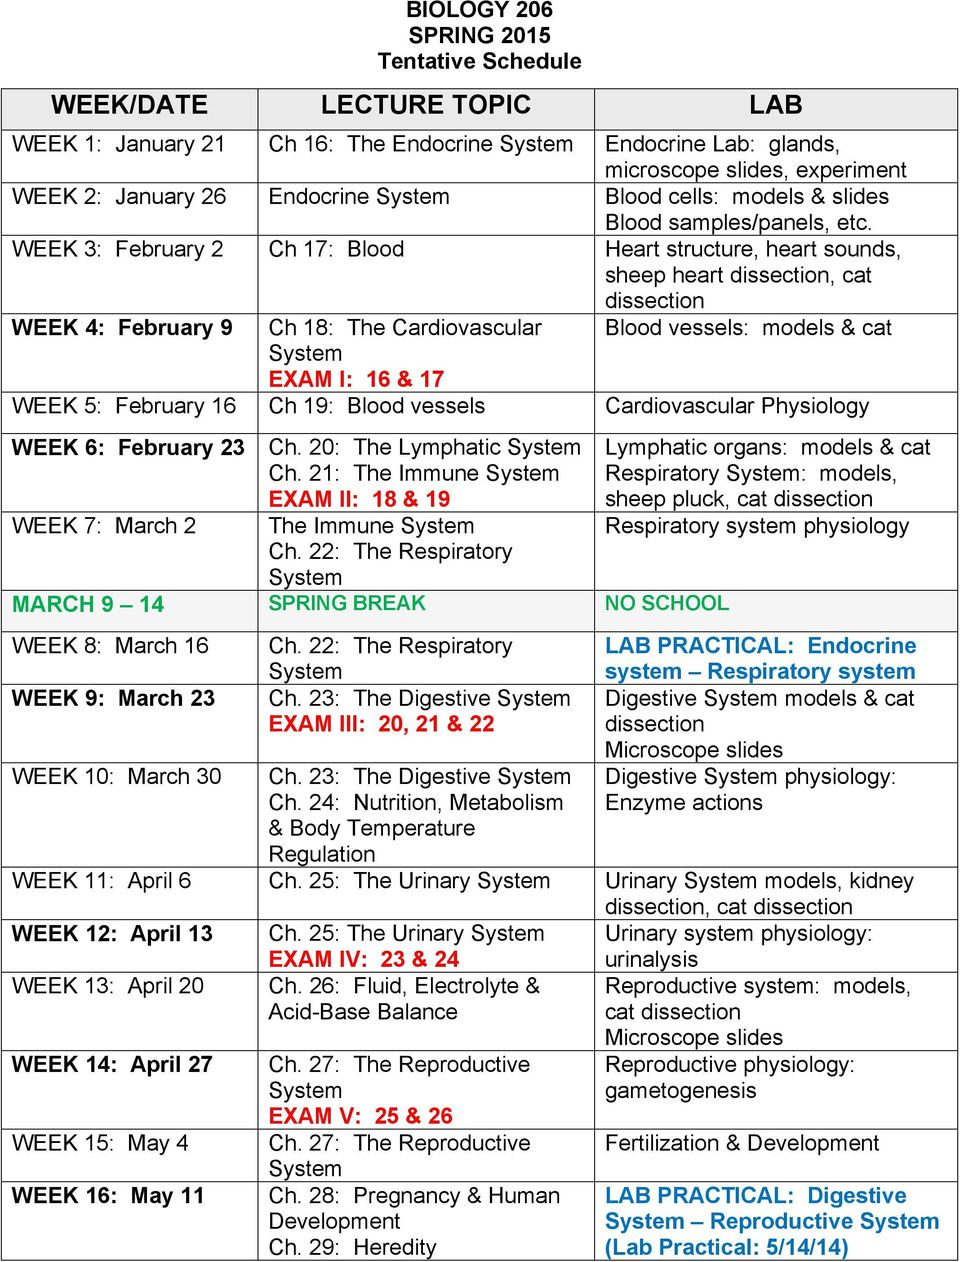 WEEK 3: February 2 Ch 17: Blood Heart structure, heart sounds, sheep heart dissection, cat dissection WEEK 4: February 9 Ch 18: The Cardiovascular Blood vessels: models & cat EXAM I: 16 & 17 WEEK 5: